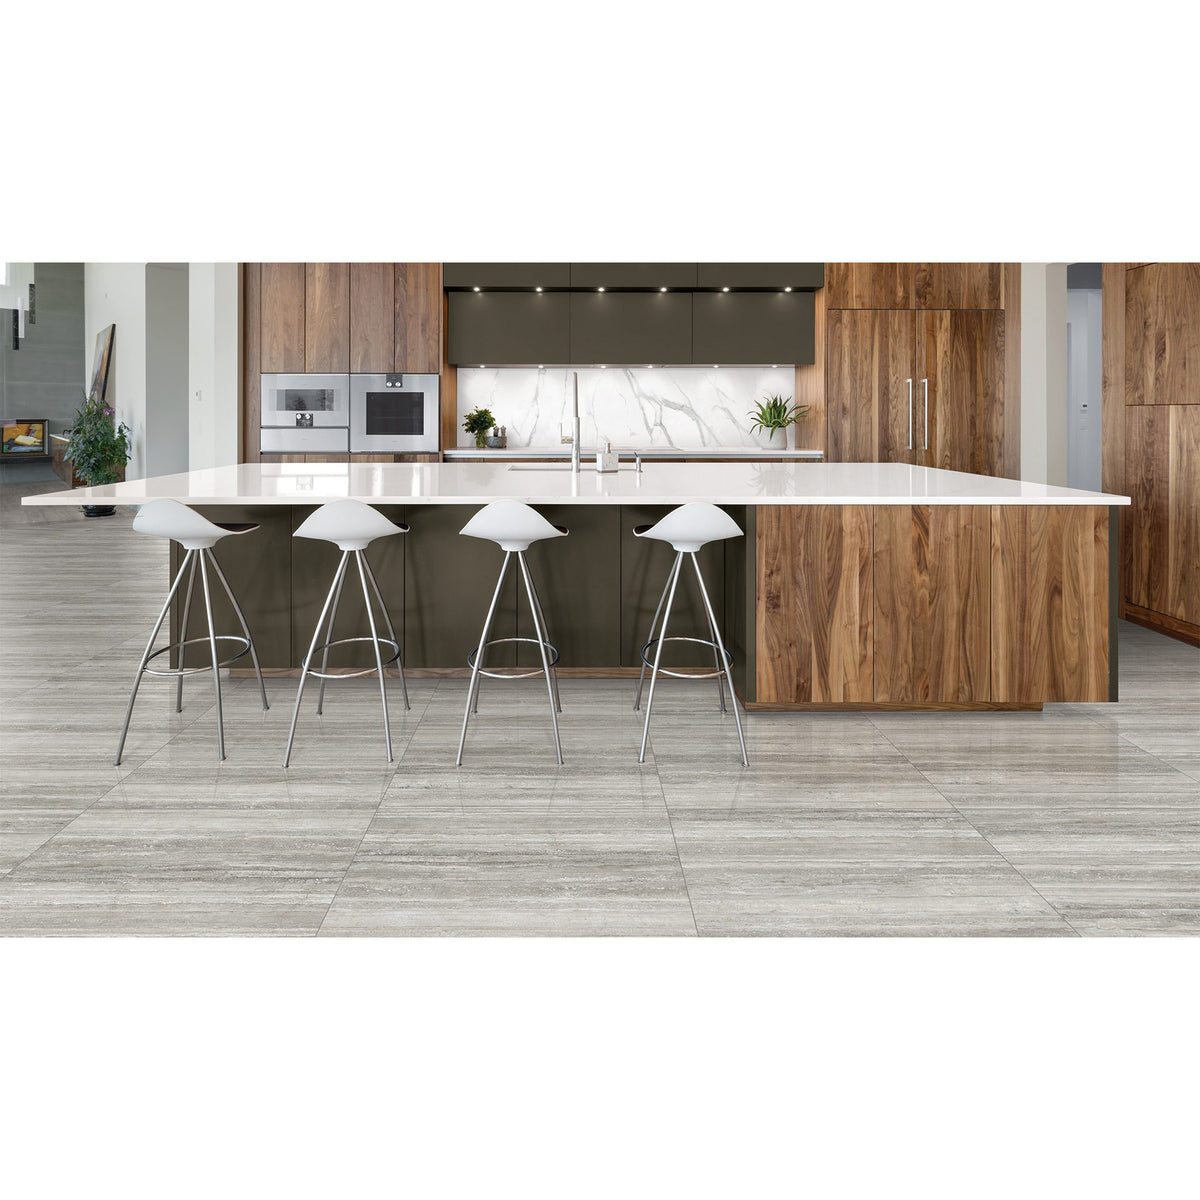 Anatolia - La Marca Glazed Porcelain 24 in. x 48 in. Polished Tile - Travertino Instrata Installed